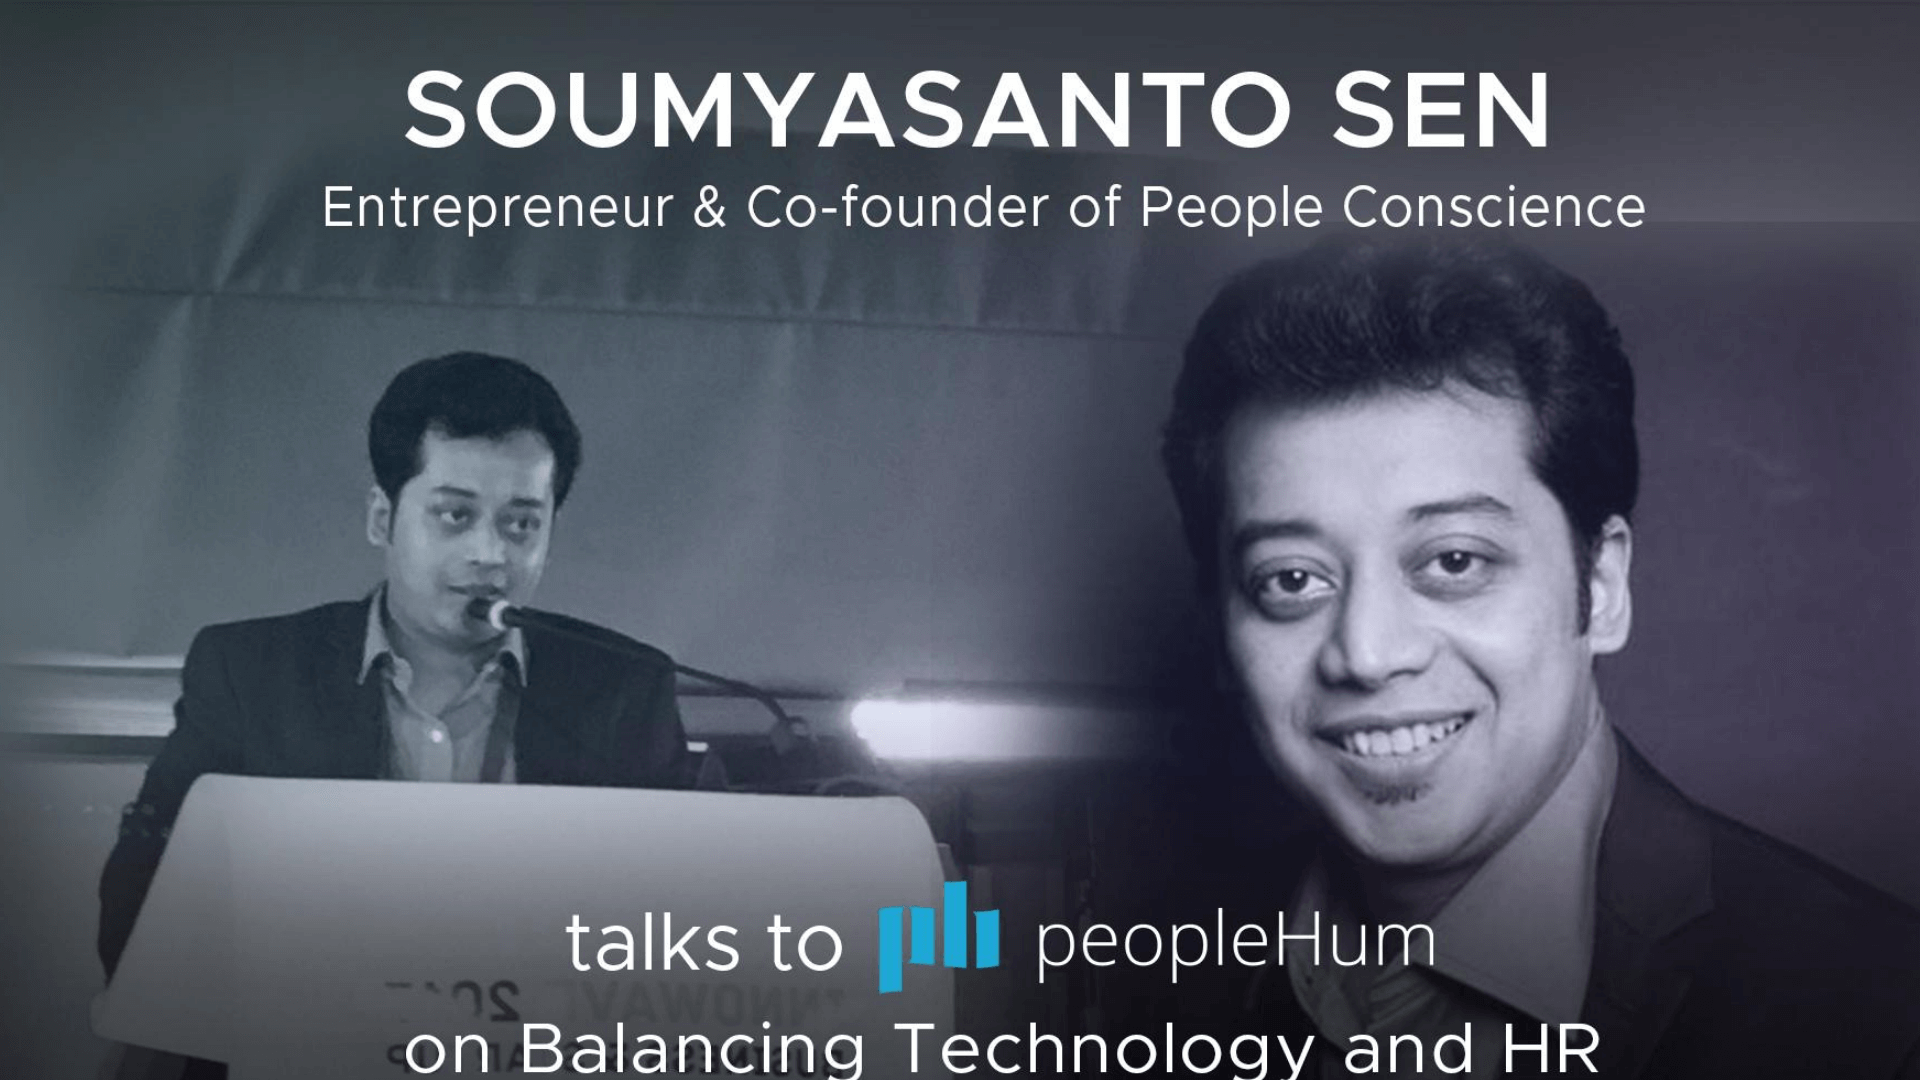 Equipoise the technology and HR - Soumyasanto Sen [Interview]